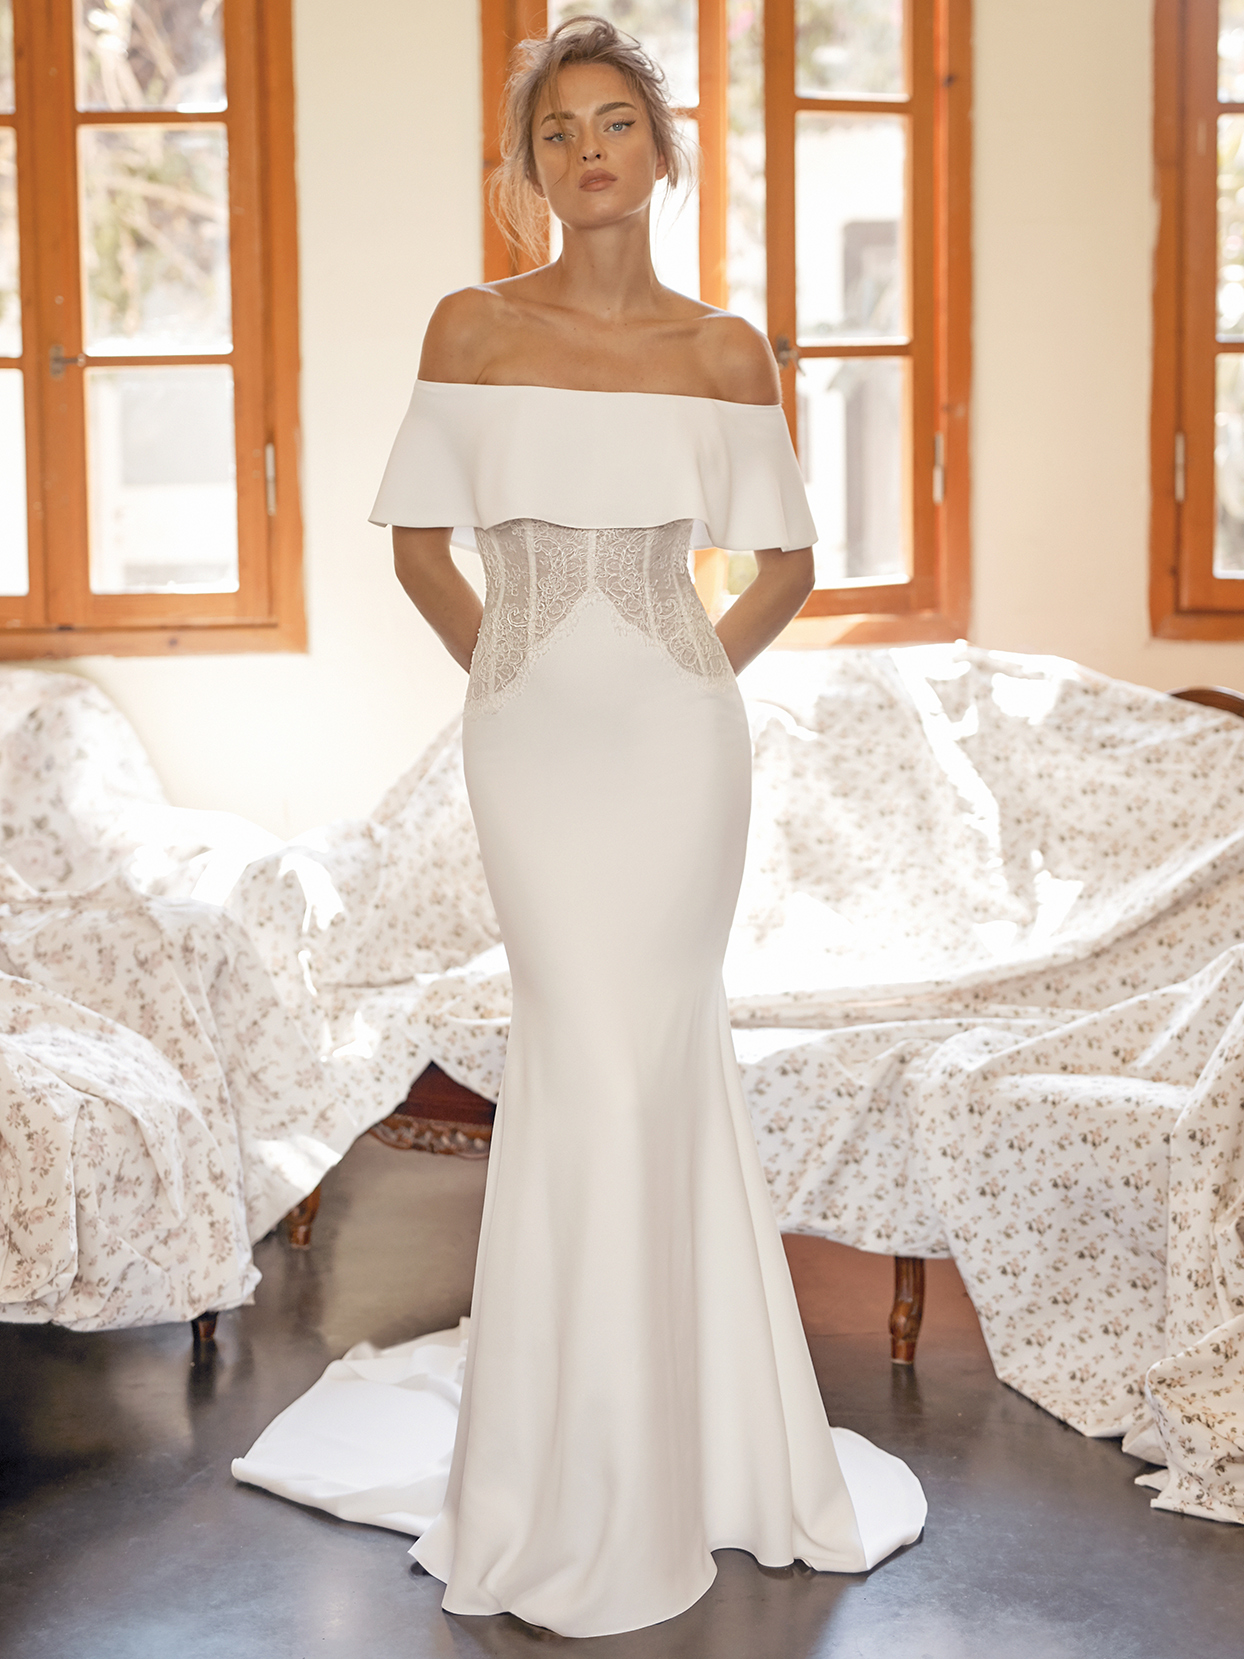 Lihi Hod straight across off-the-shoulder fit-and-flare wedding dress fall 2021